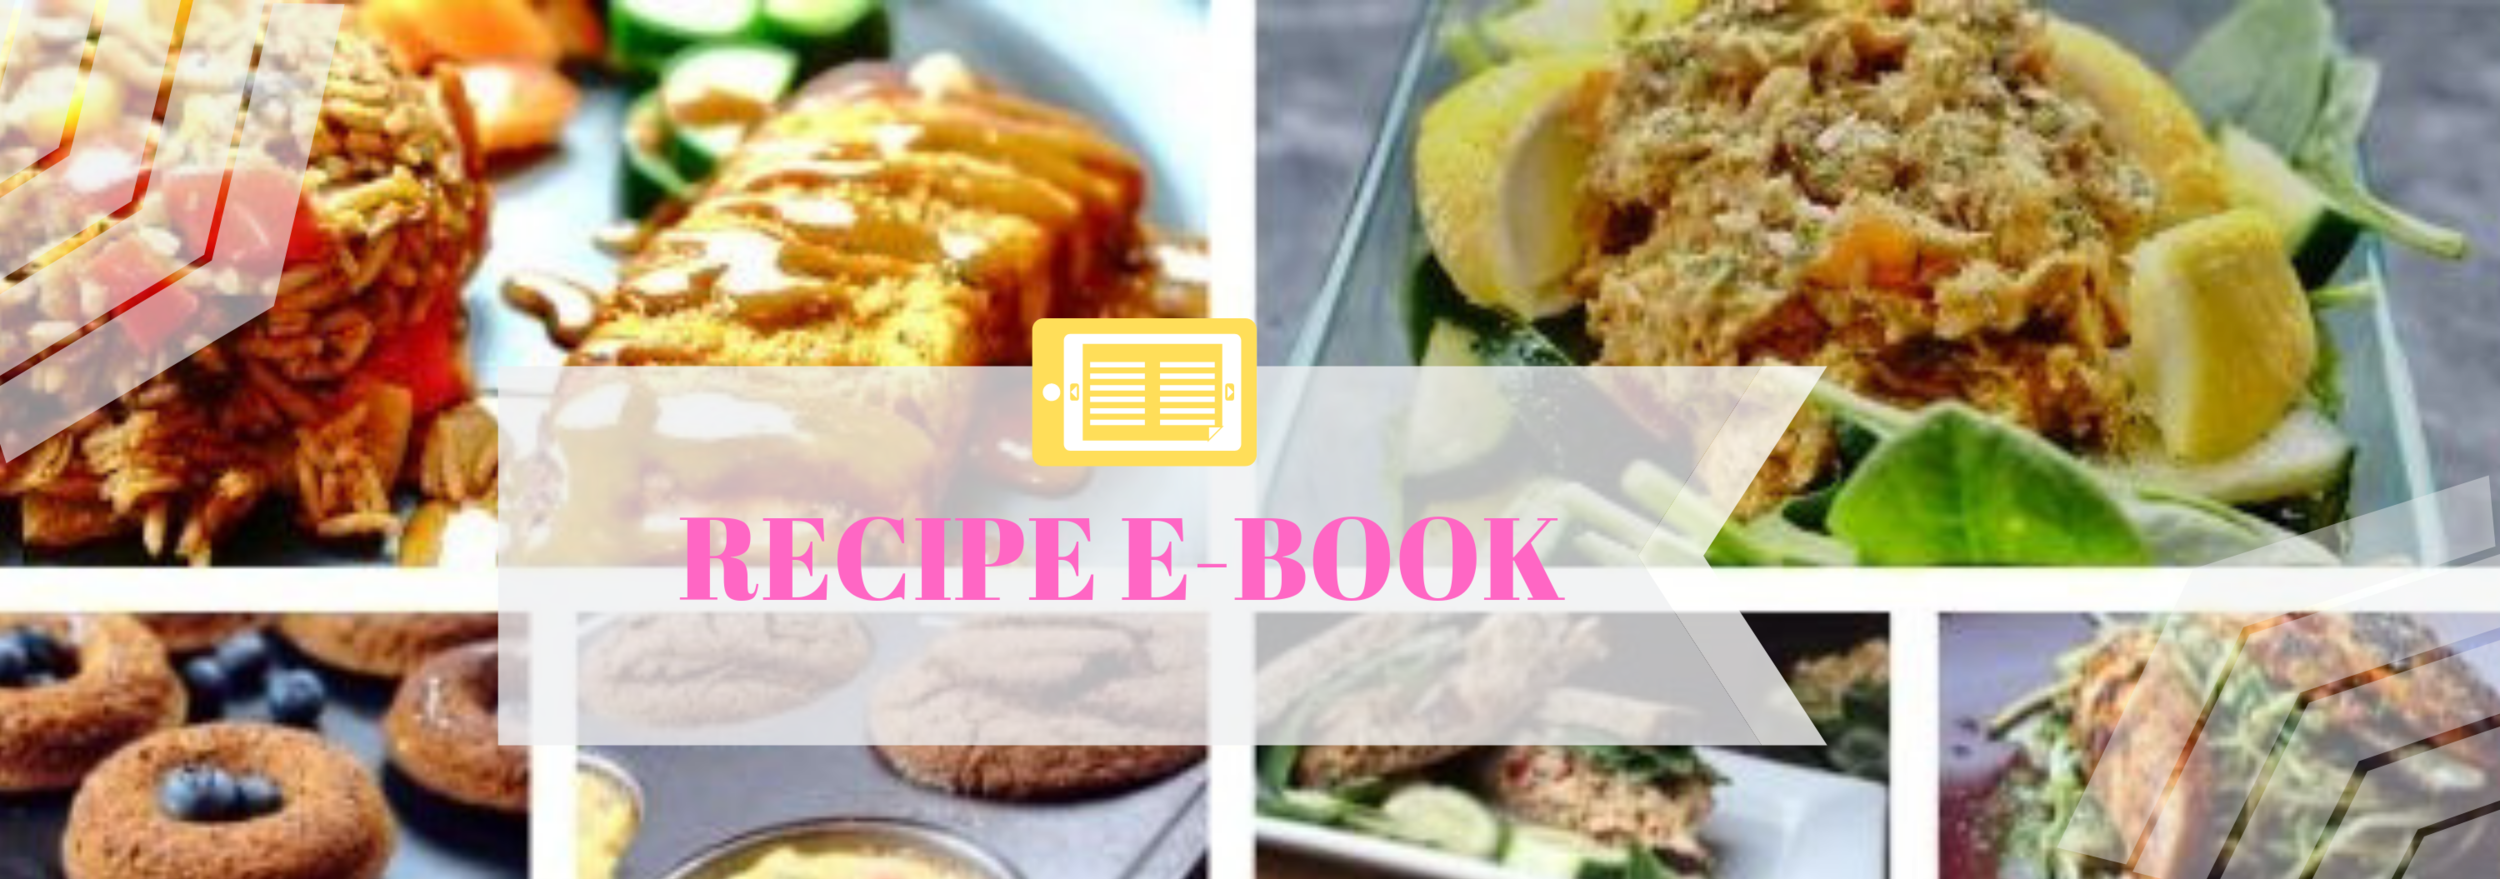 RECIPE E-BOOK-2.png